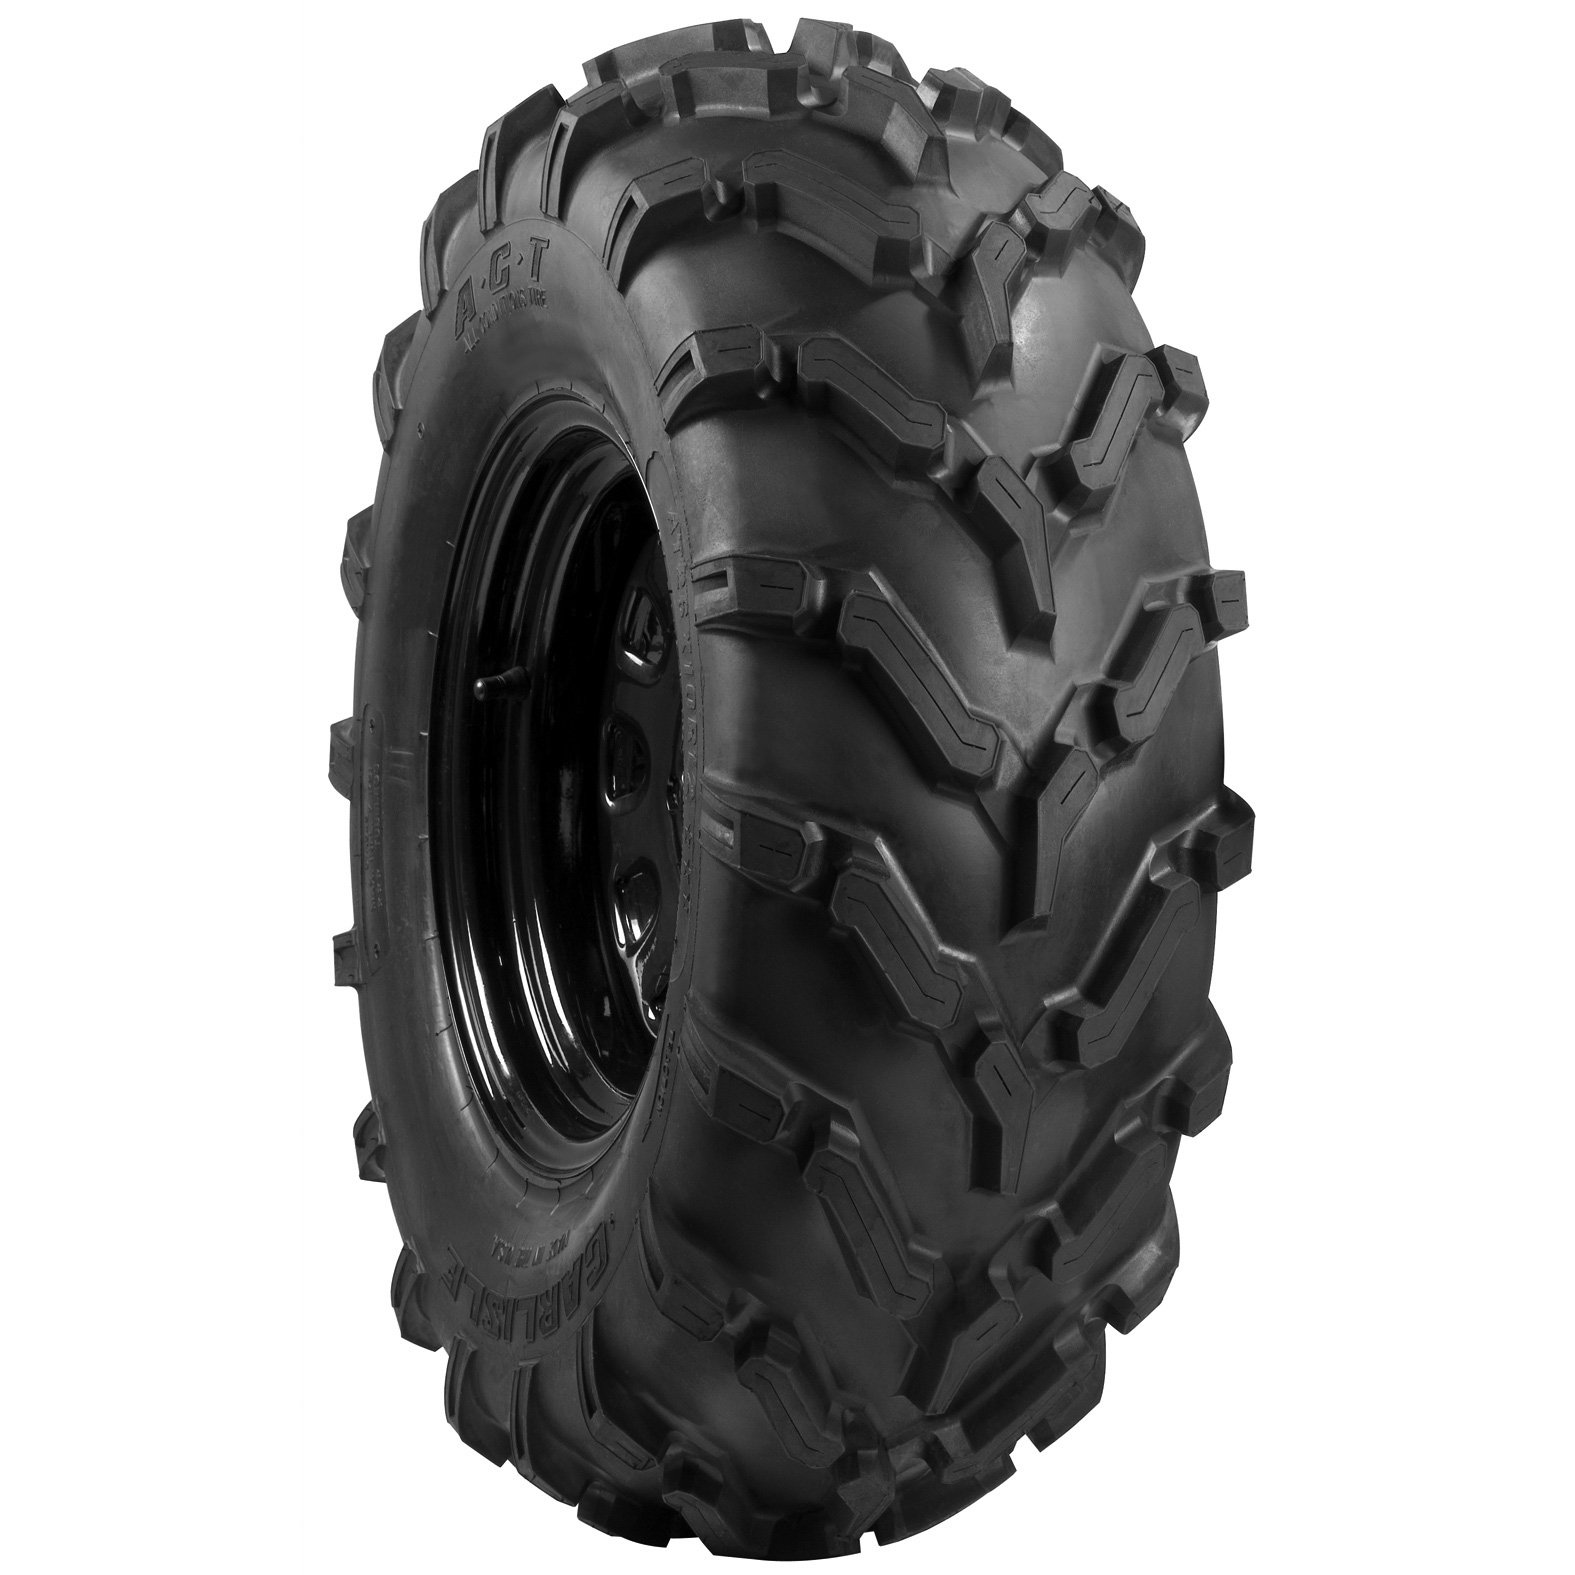 Carlisle ACT ATV Tire - Angle